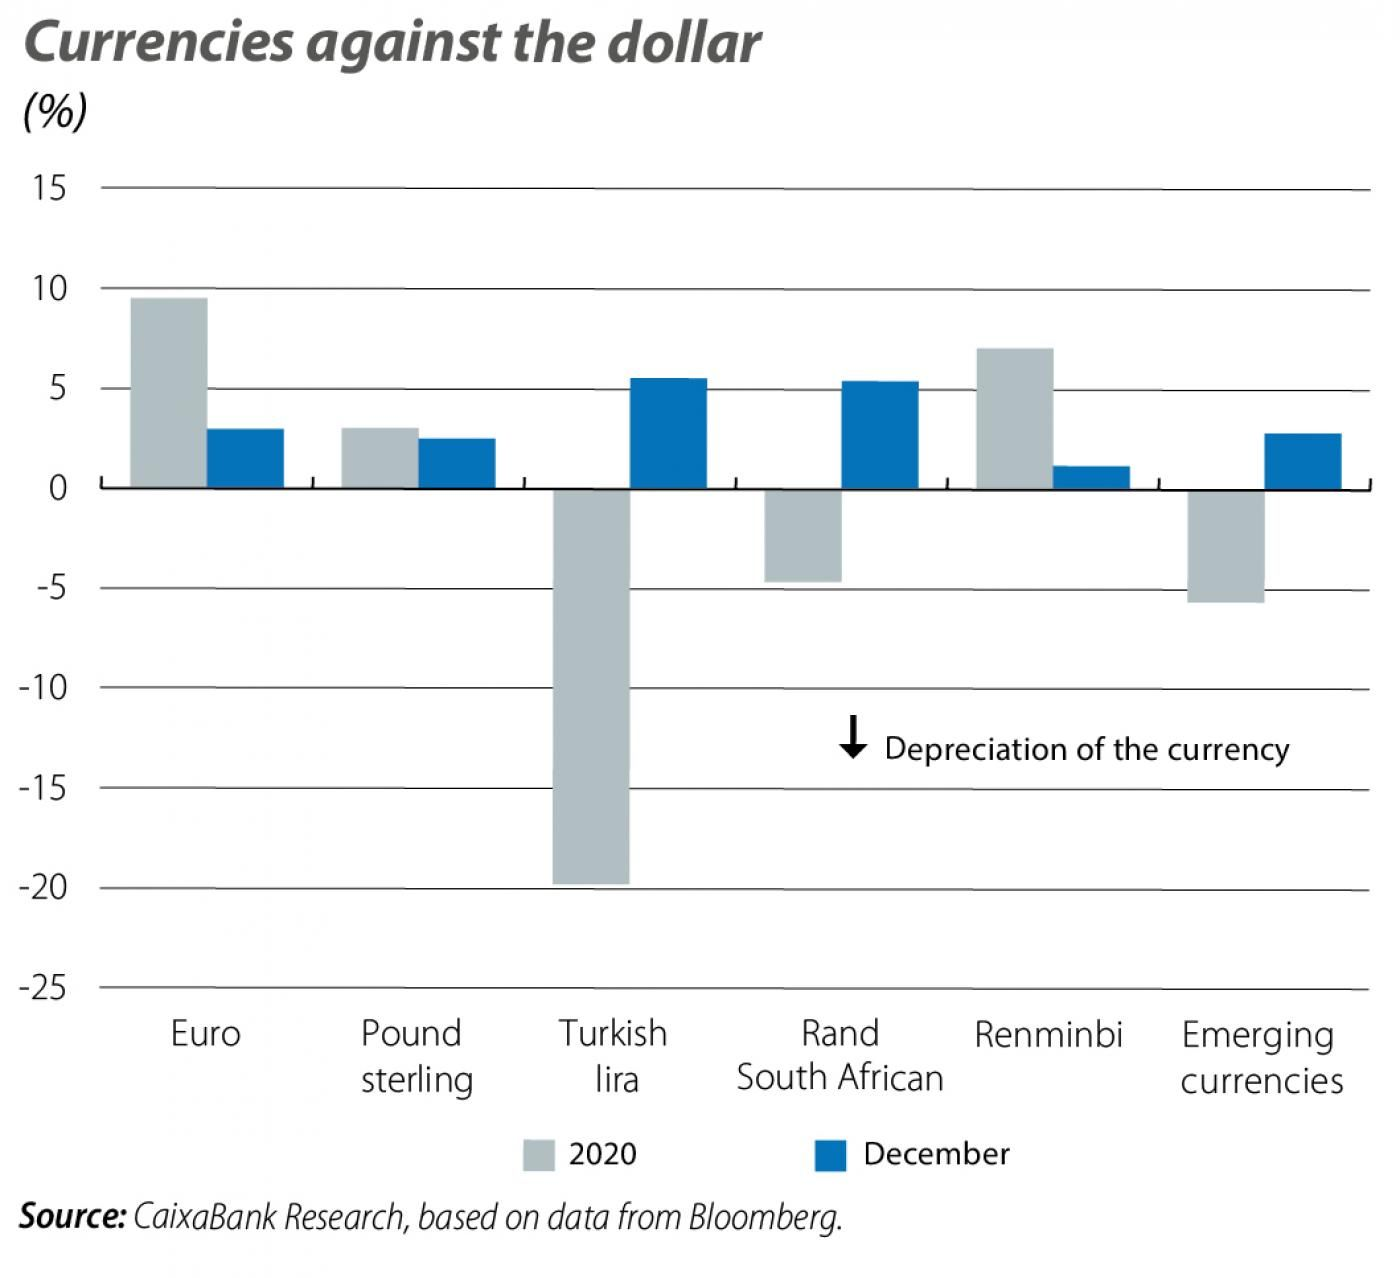 Currencies against the dollar